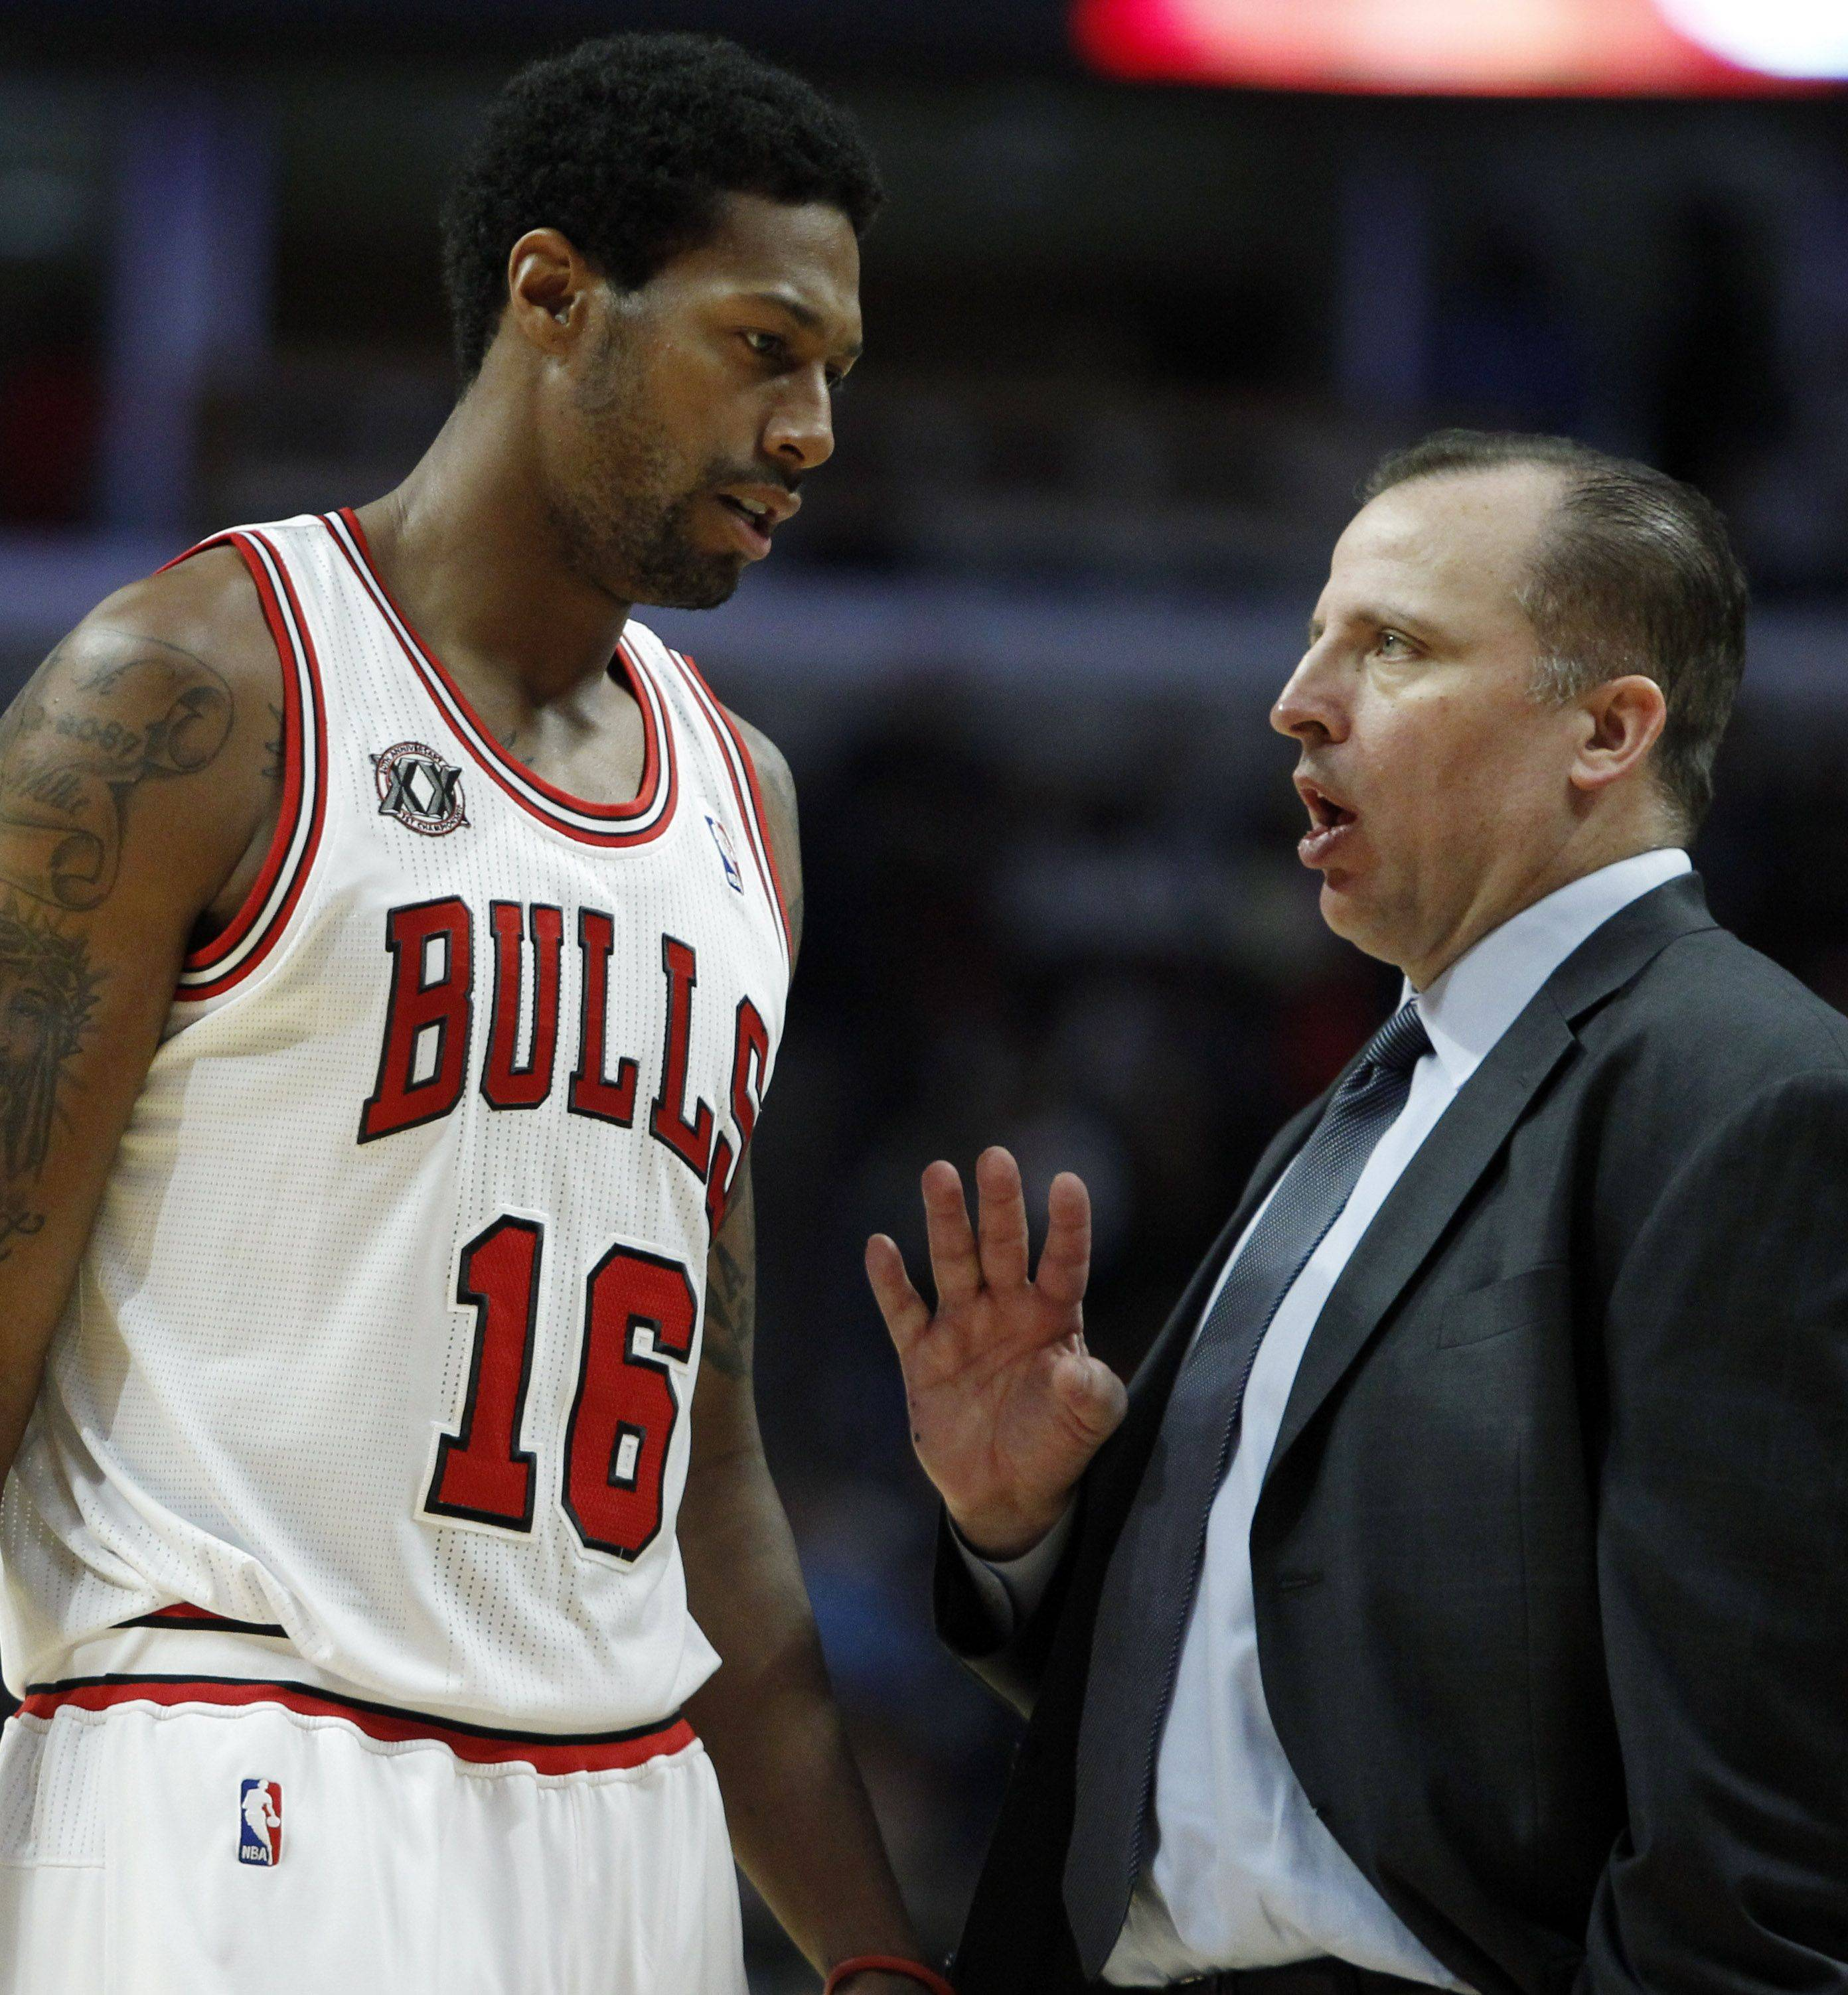 Chicago Bulls head coach Tom Thibodeau, right, talks to James Johnson during the fourth quarter of a preseason NBA basketball game against the Indiana Pacers in Chicago, Friday, Oct. 22, 2010. The Bulls won 102-74.